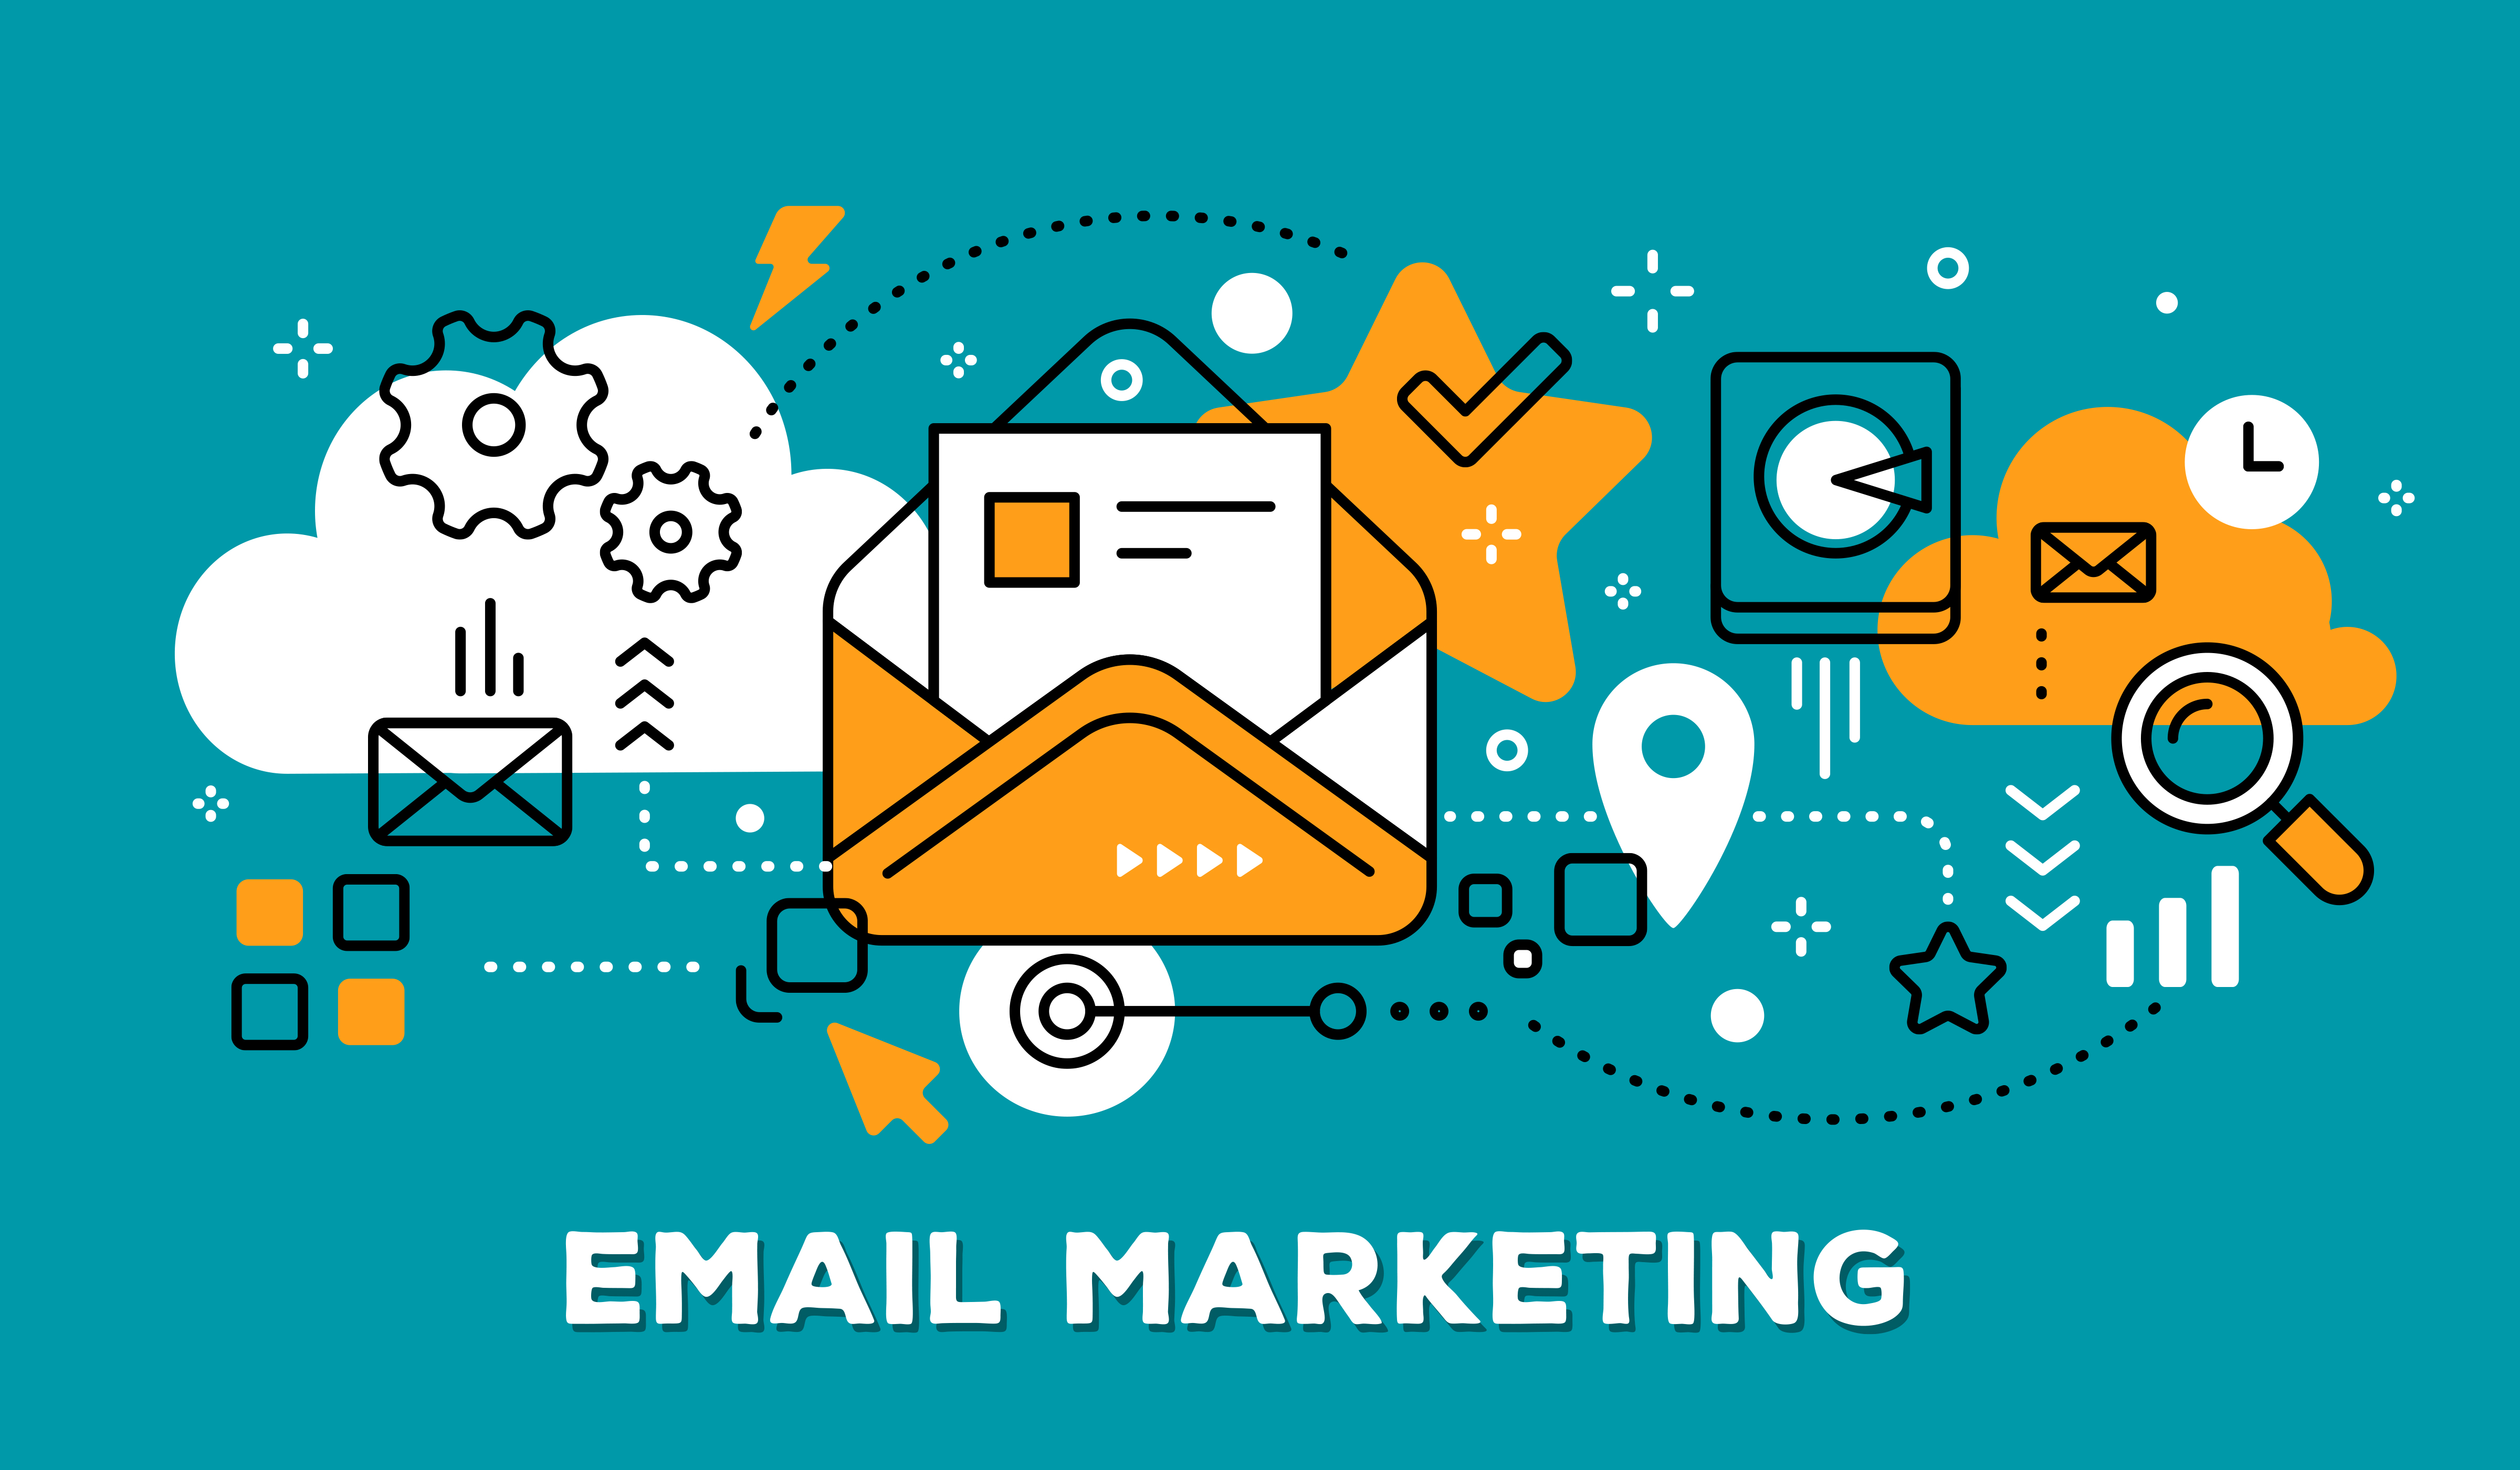 email marketing combined with social media